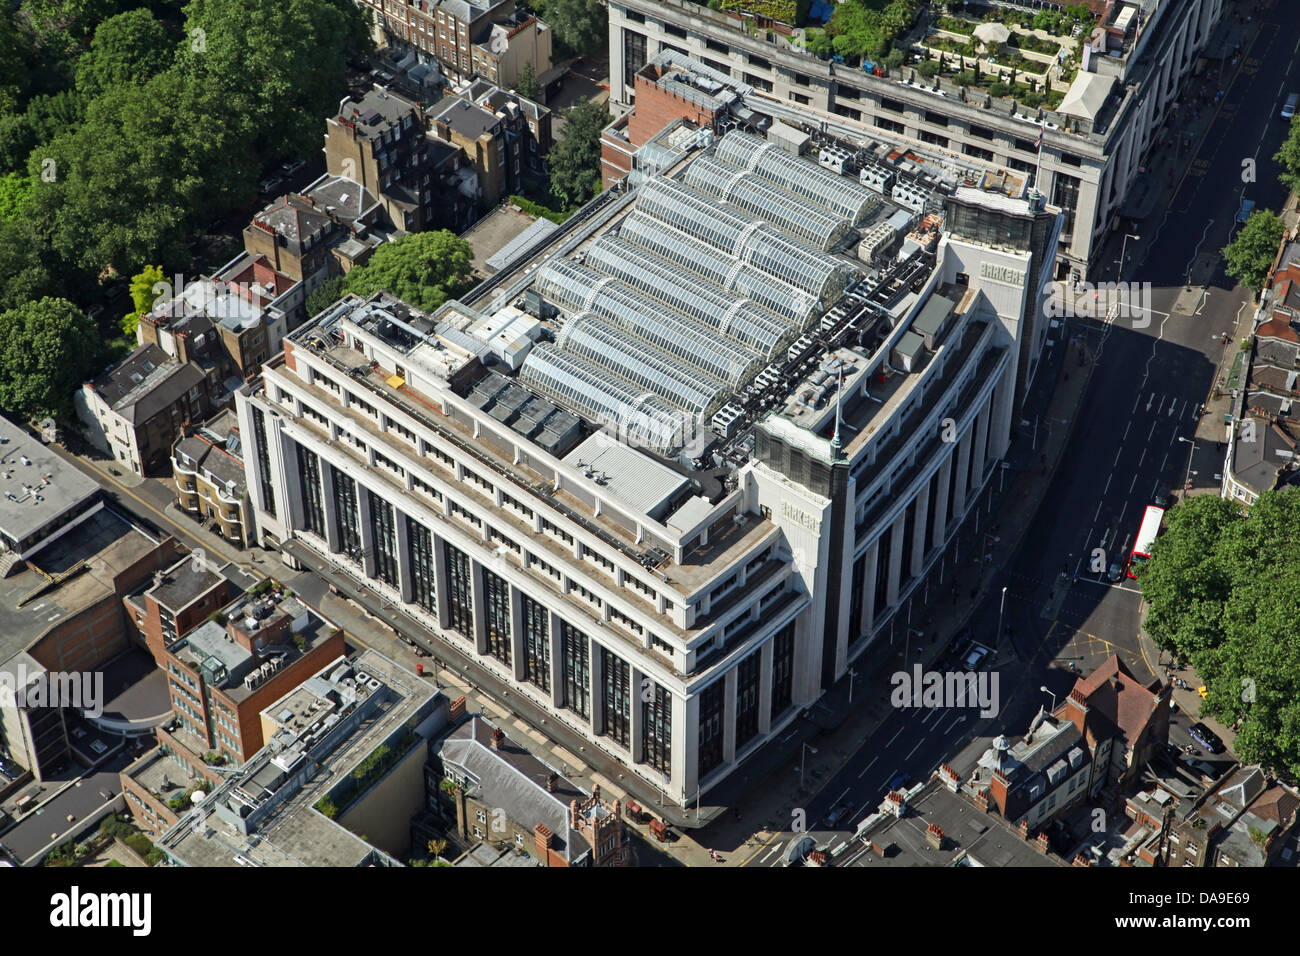 aerial view of Barker's Building on Kensington High Street, London - Stock Image